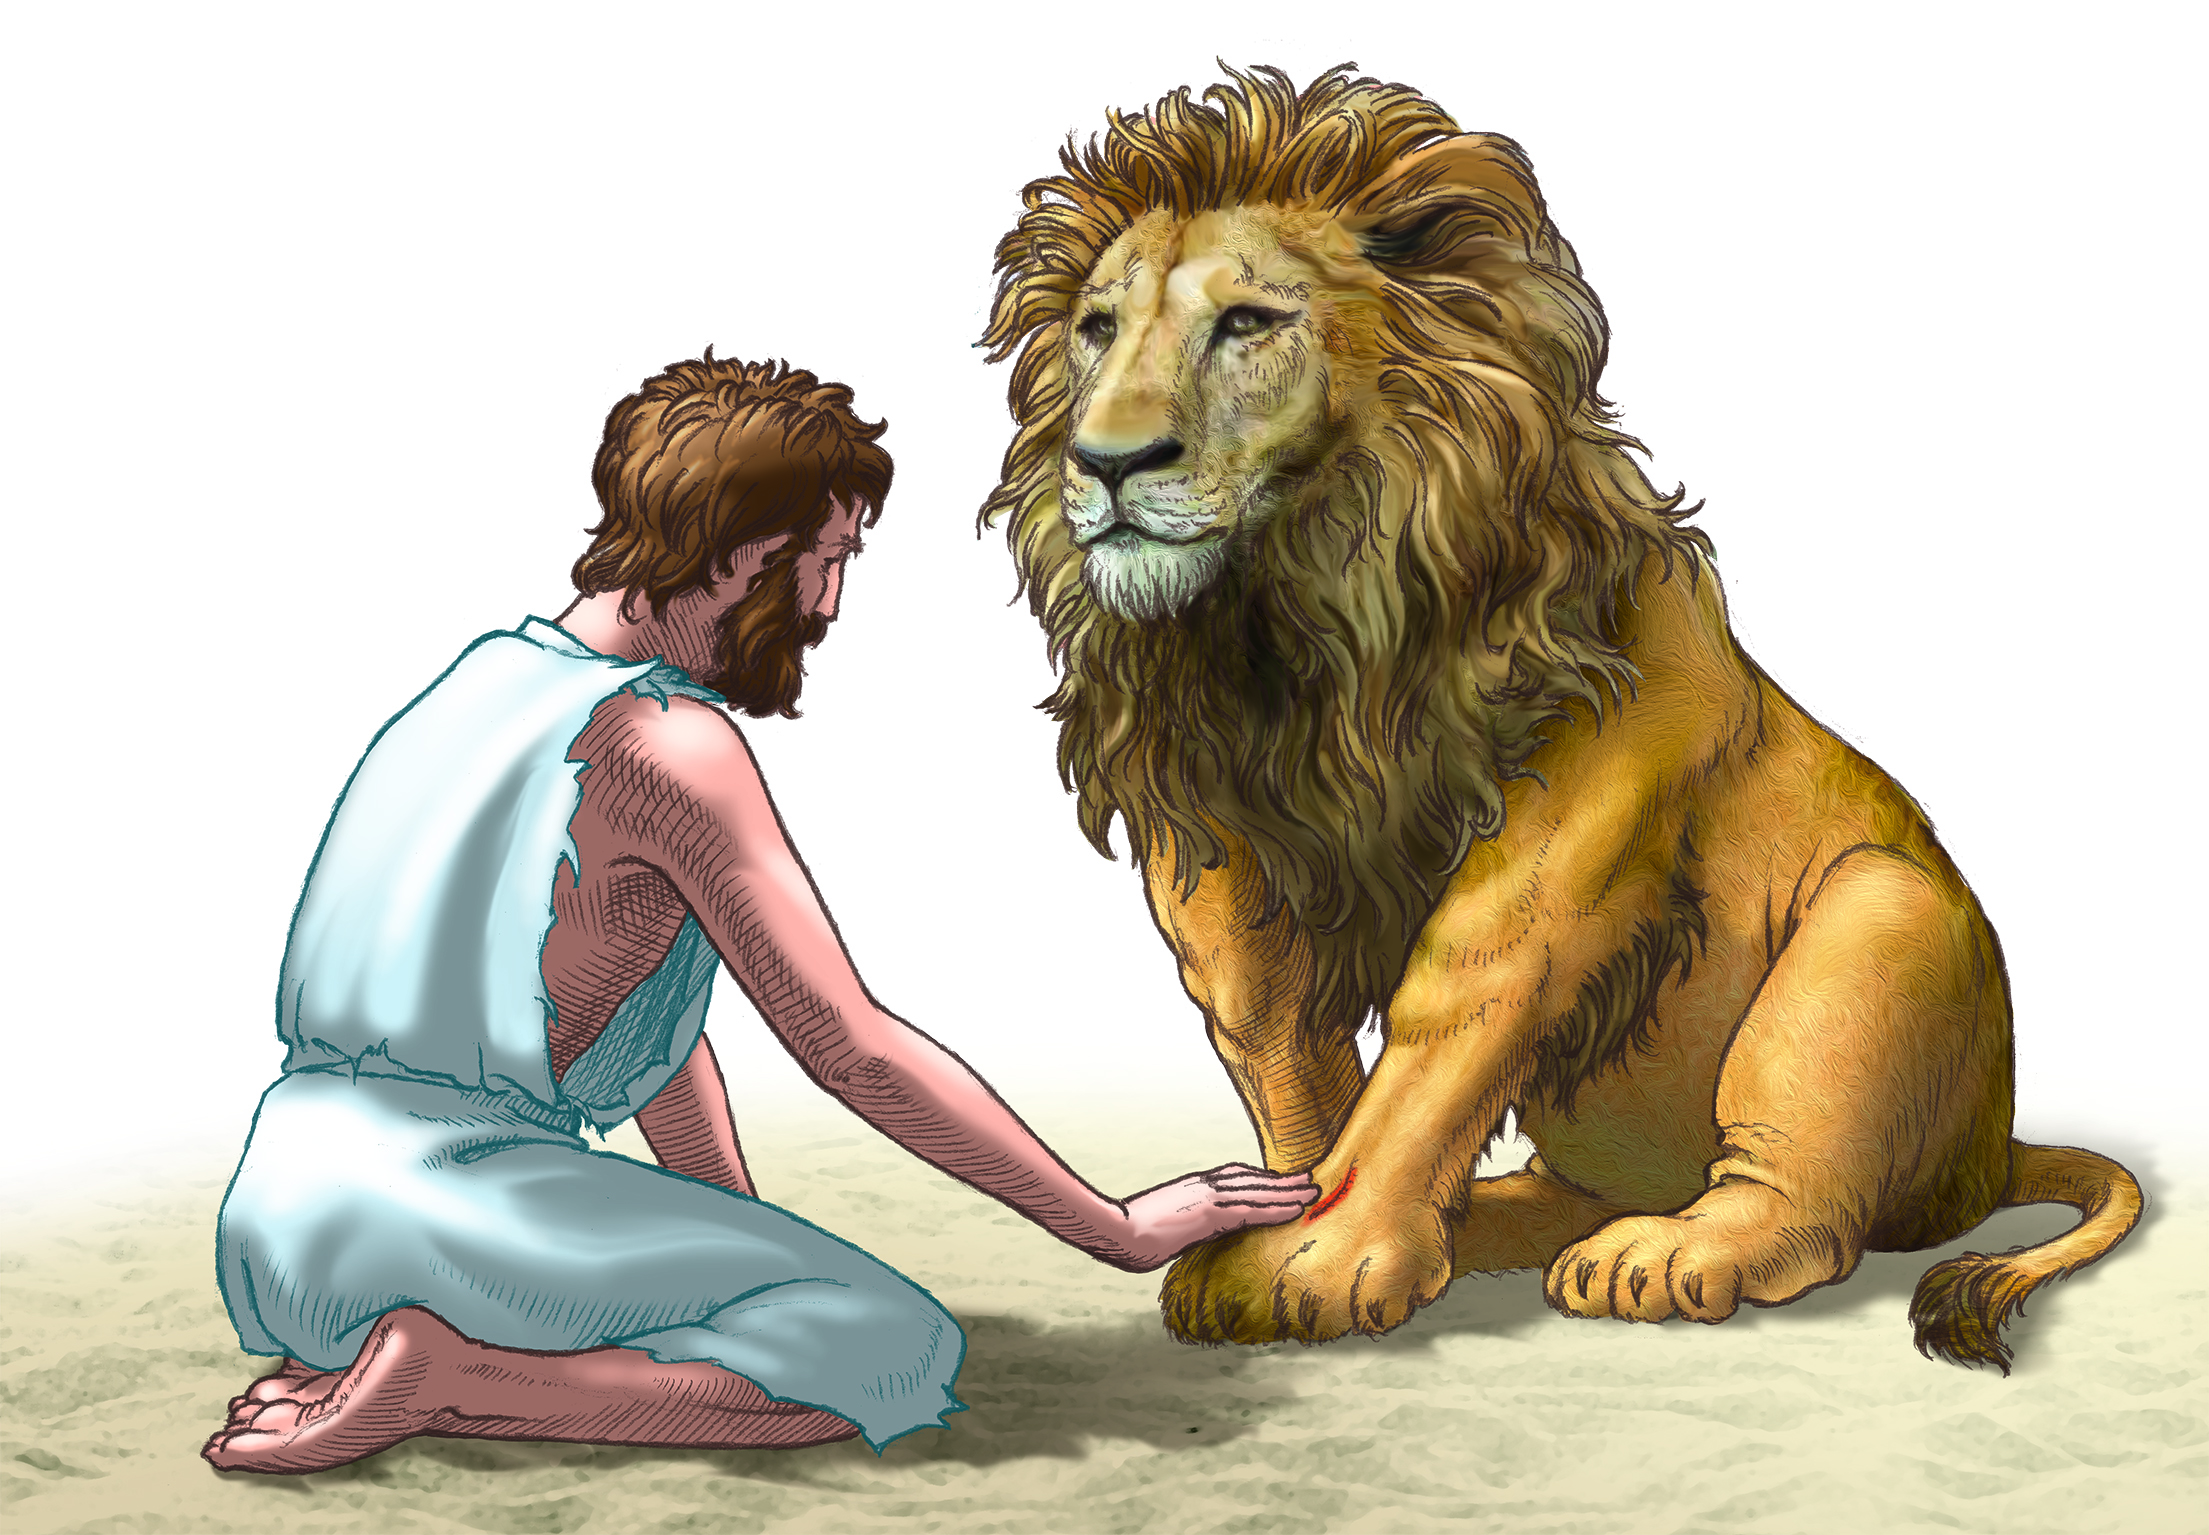 L3_Classics_the slave and the lion_3_final.jpg